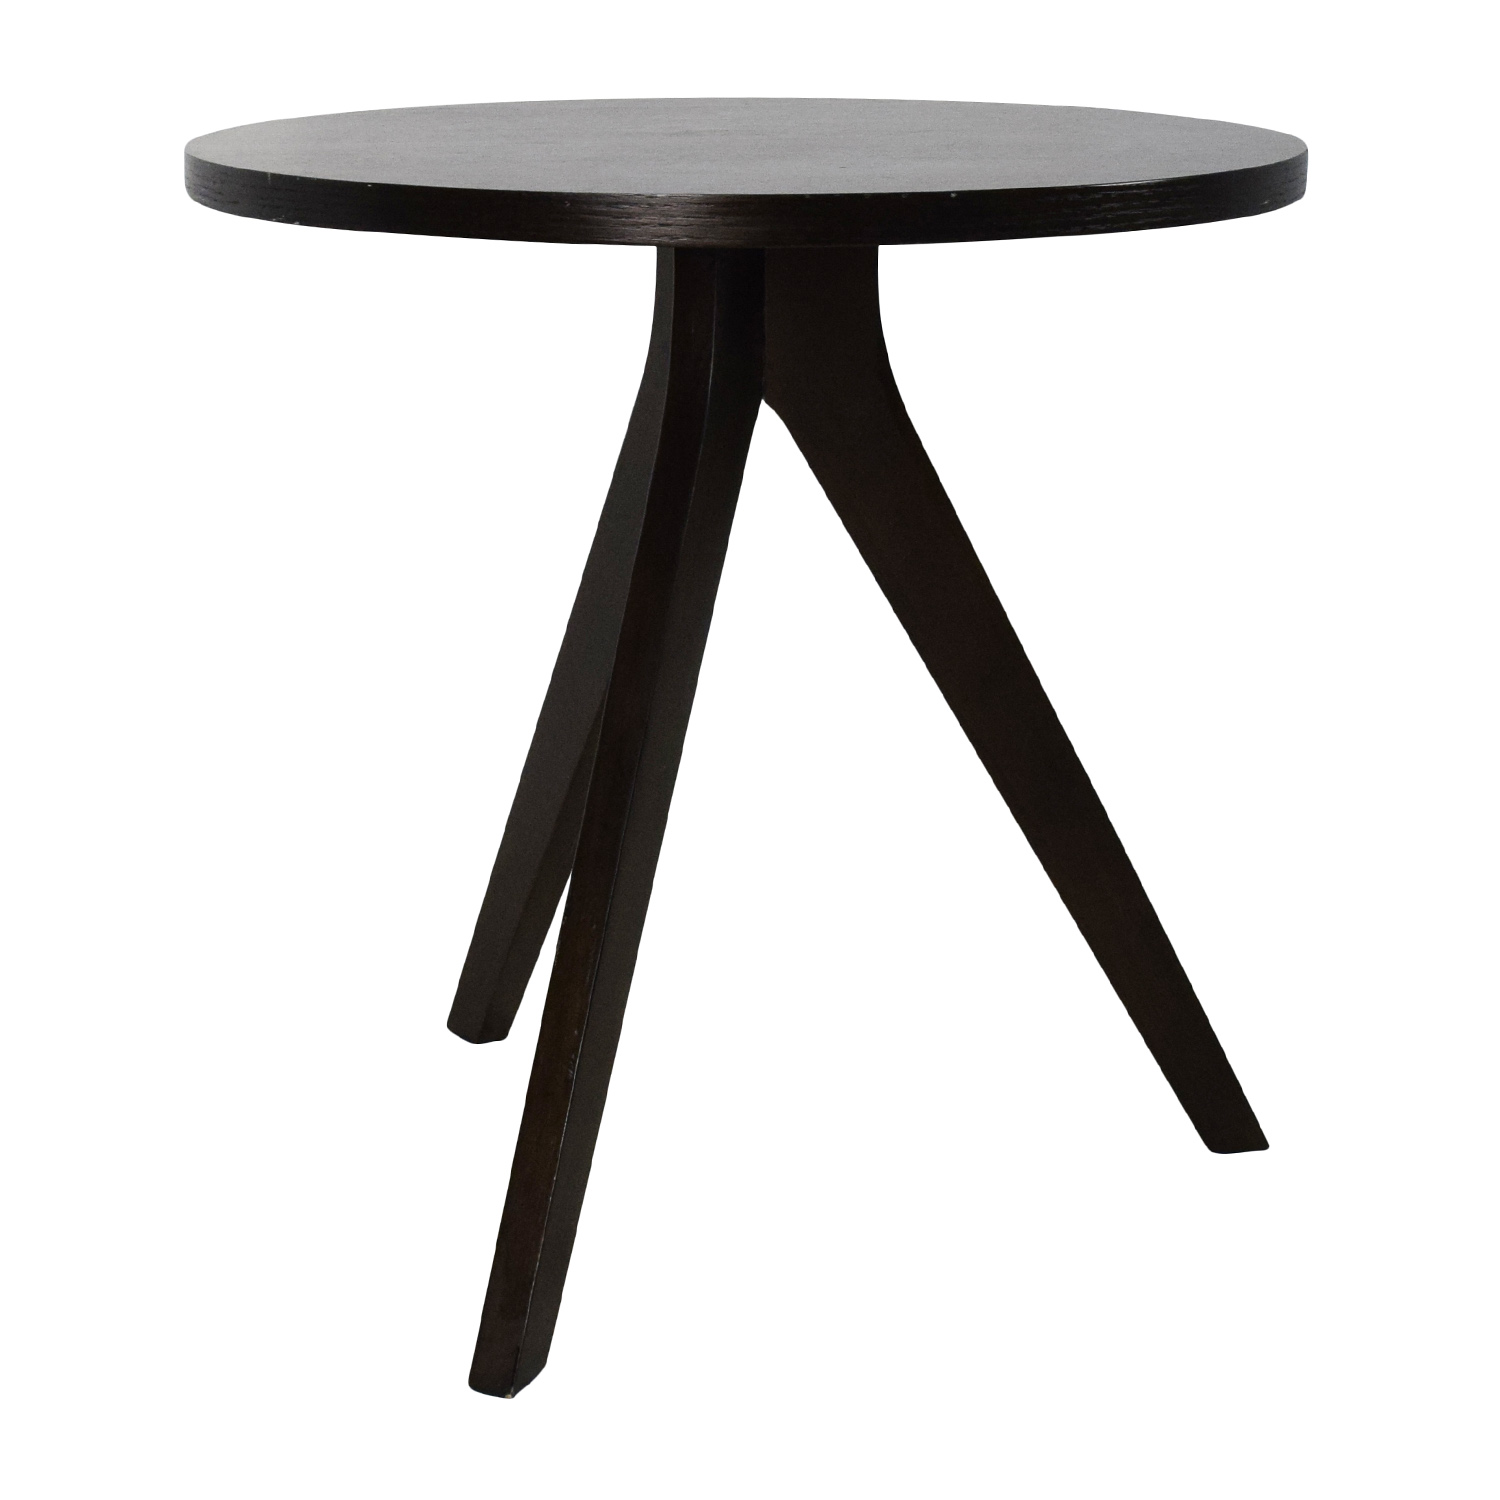 75 off west elm west elm tripod side table tables. Black Bedroom Furniture Sets. Home Design Ideas